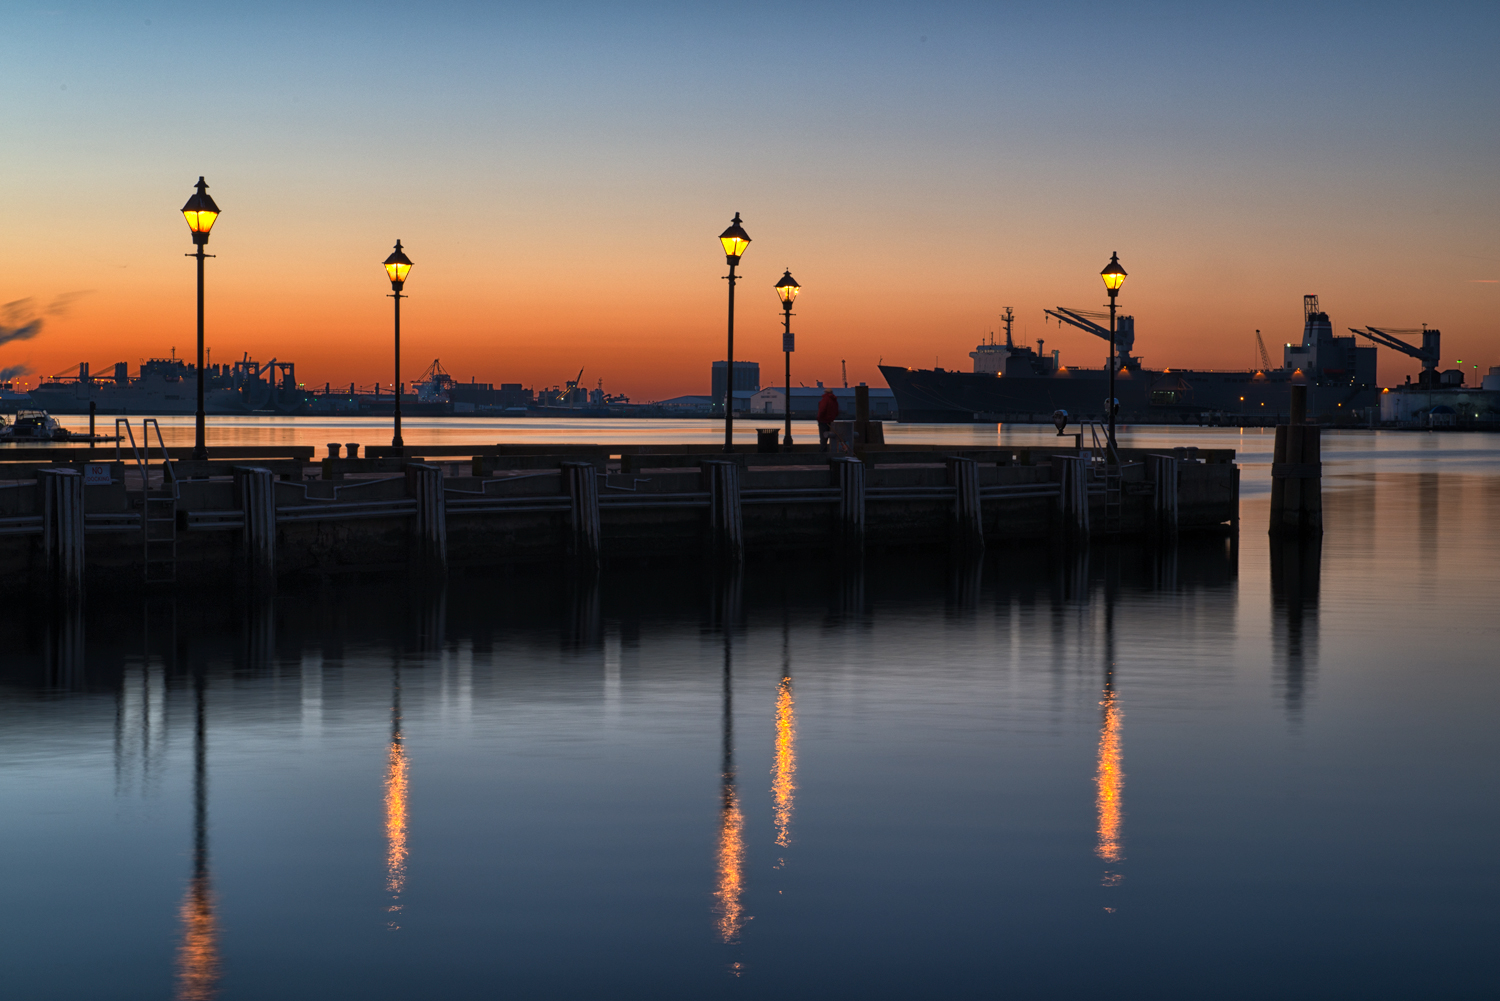 151031-Fells-Point-44-as-Smart-Object-1.jpg